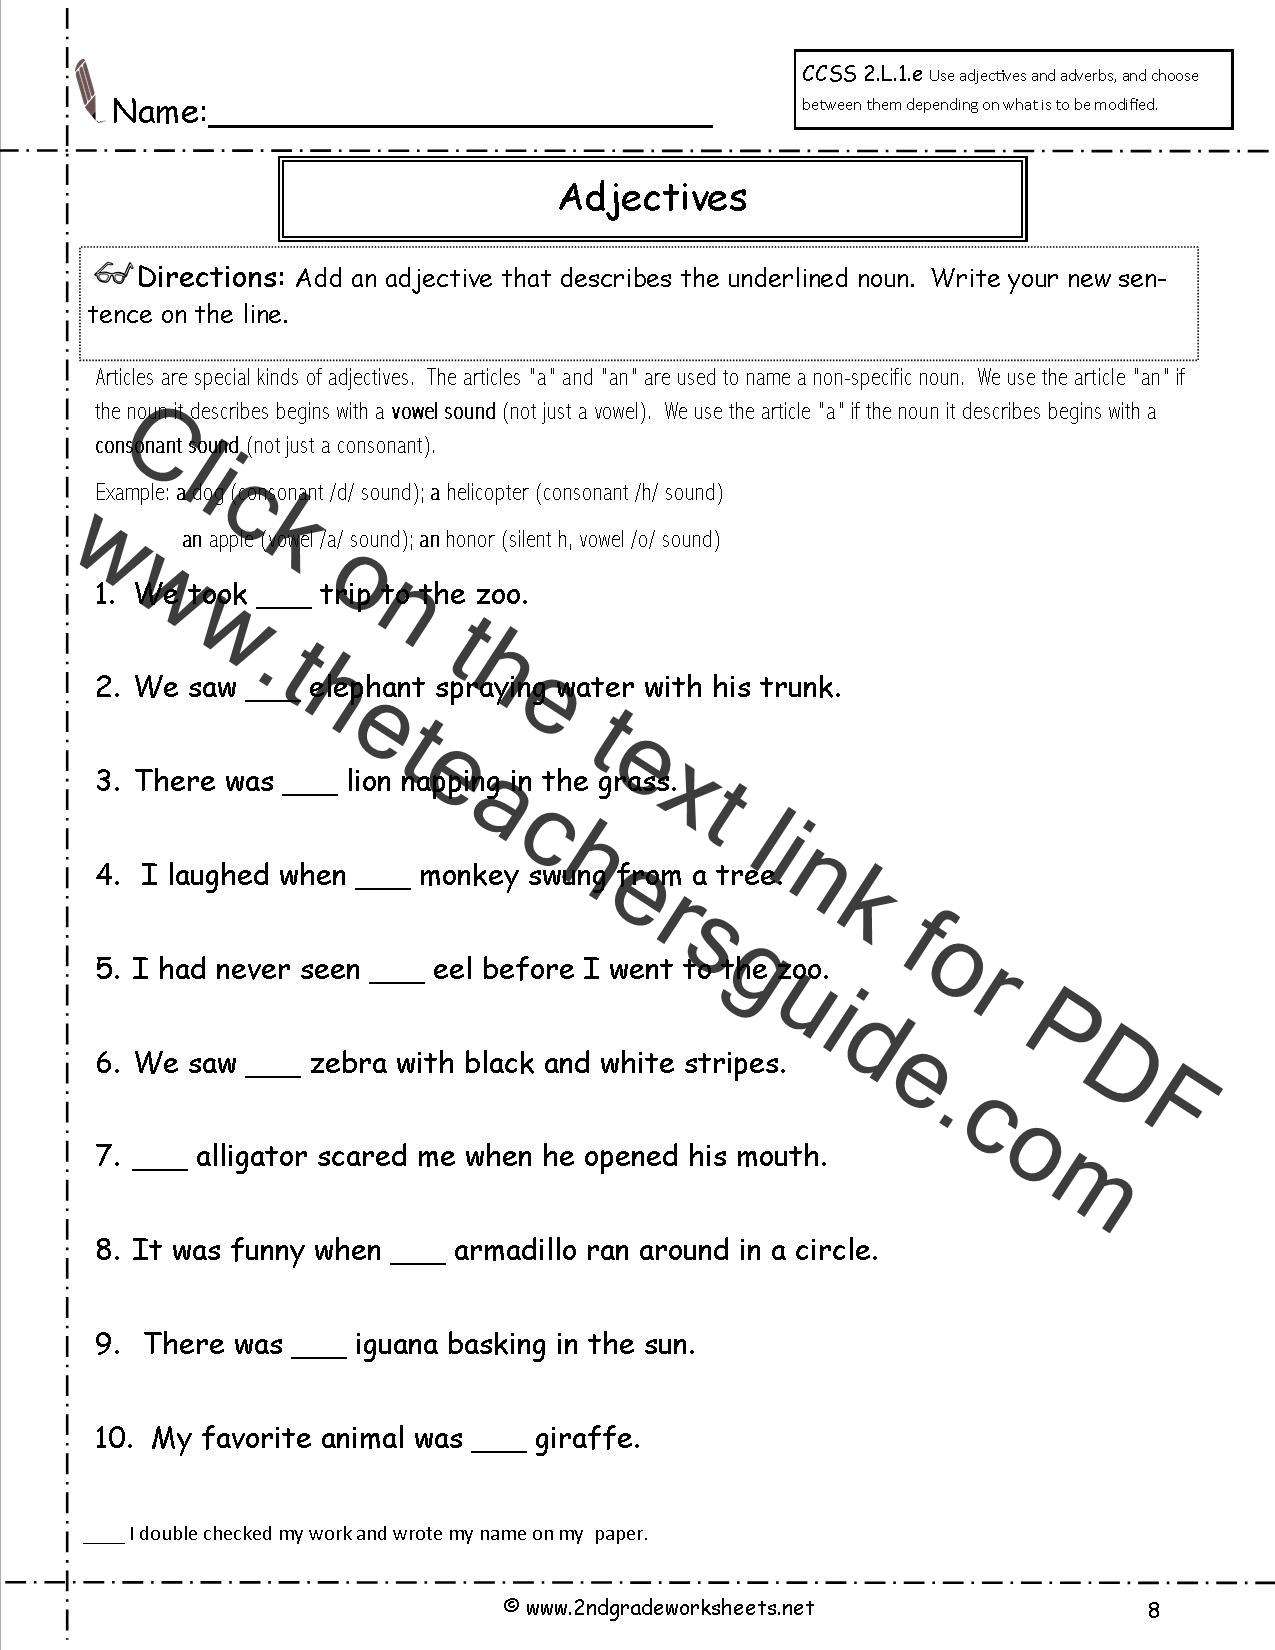 Worksheets 2nd Grade Language Worksheets free languagegrammar worksheets and printouts adjectives worksheets